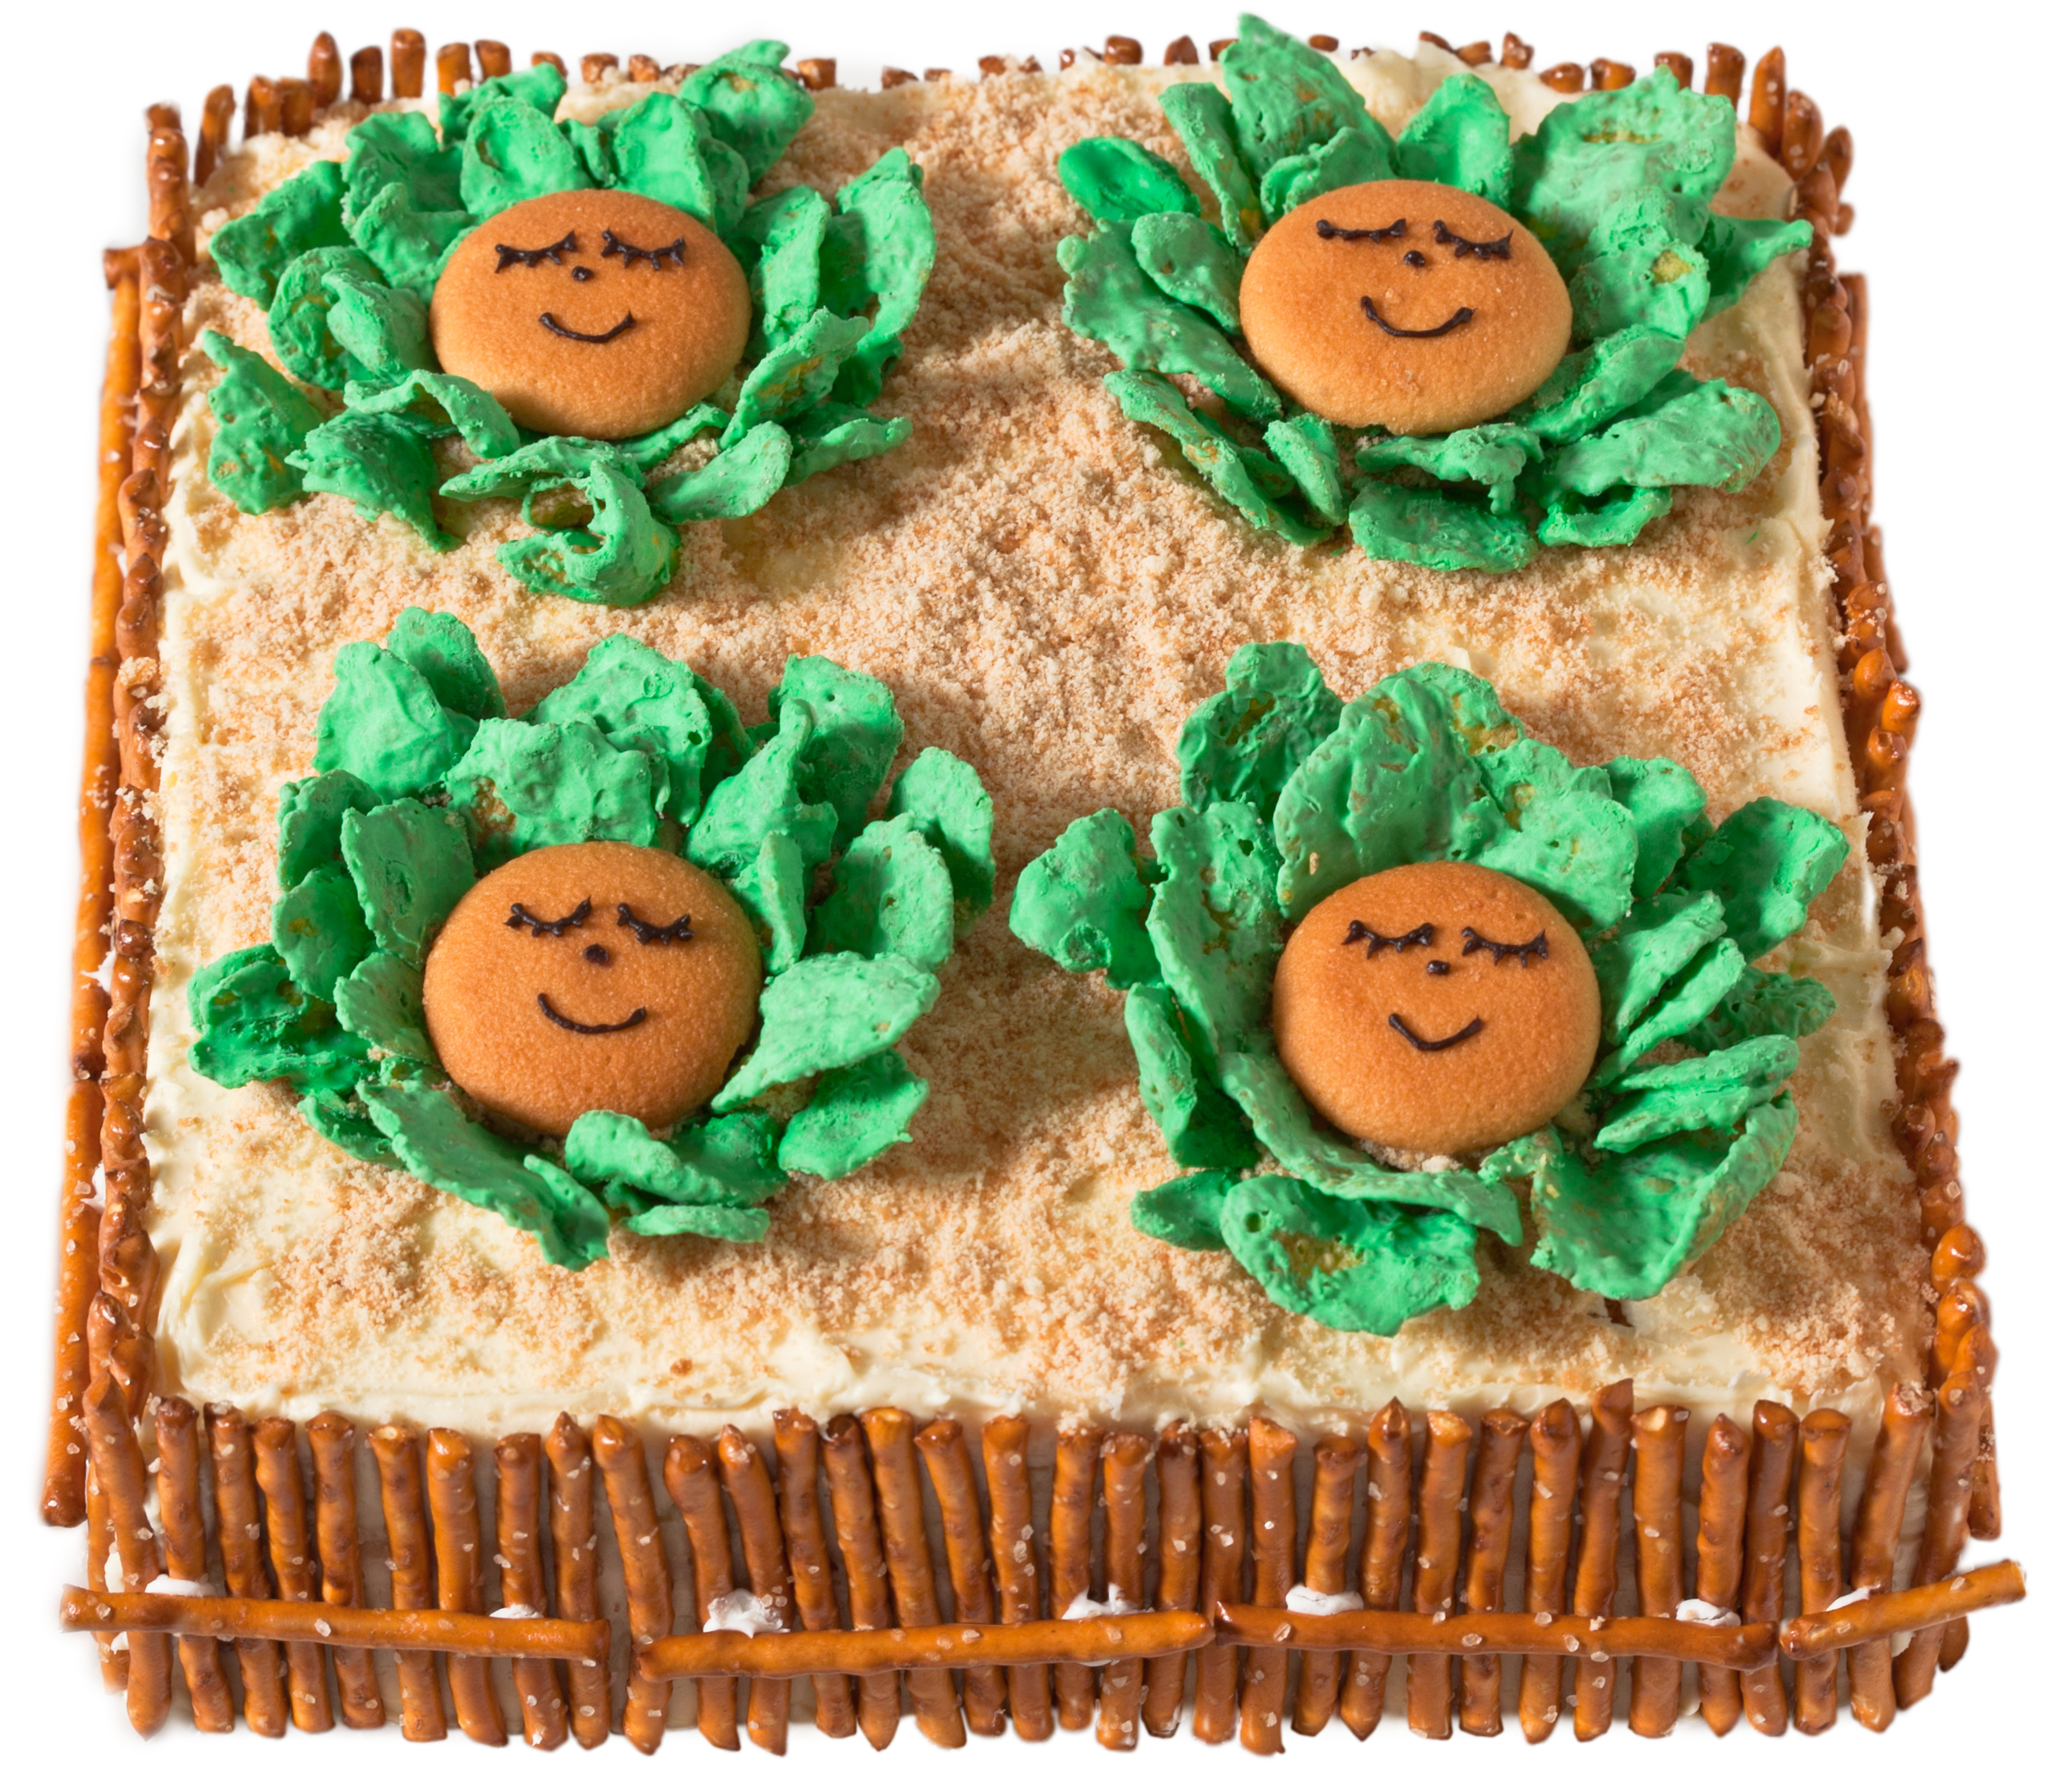 Cabbage Patch Cake